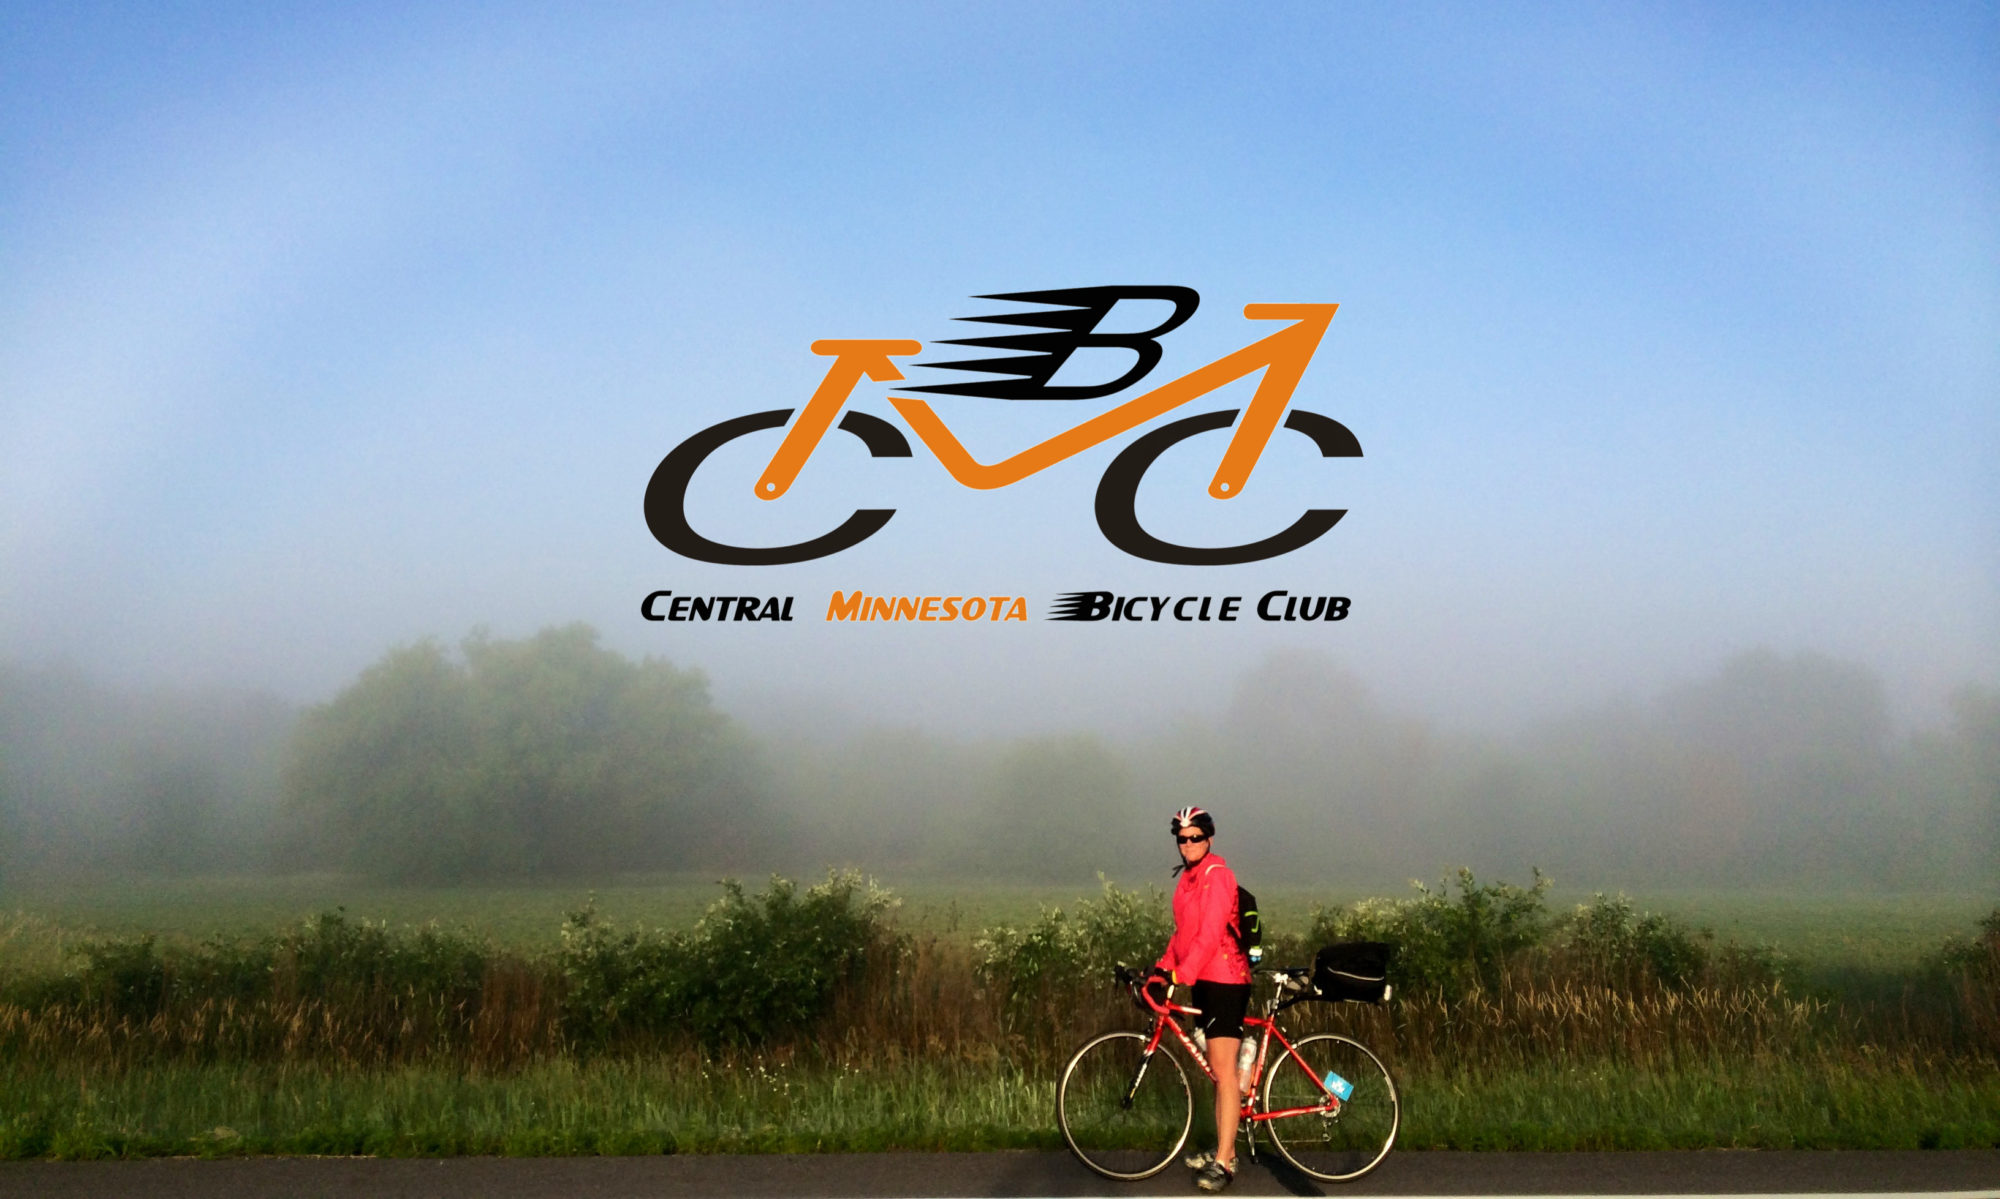 Central Minnesota Bicycle Club